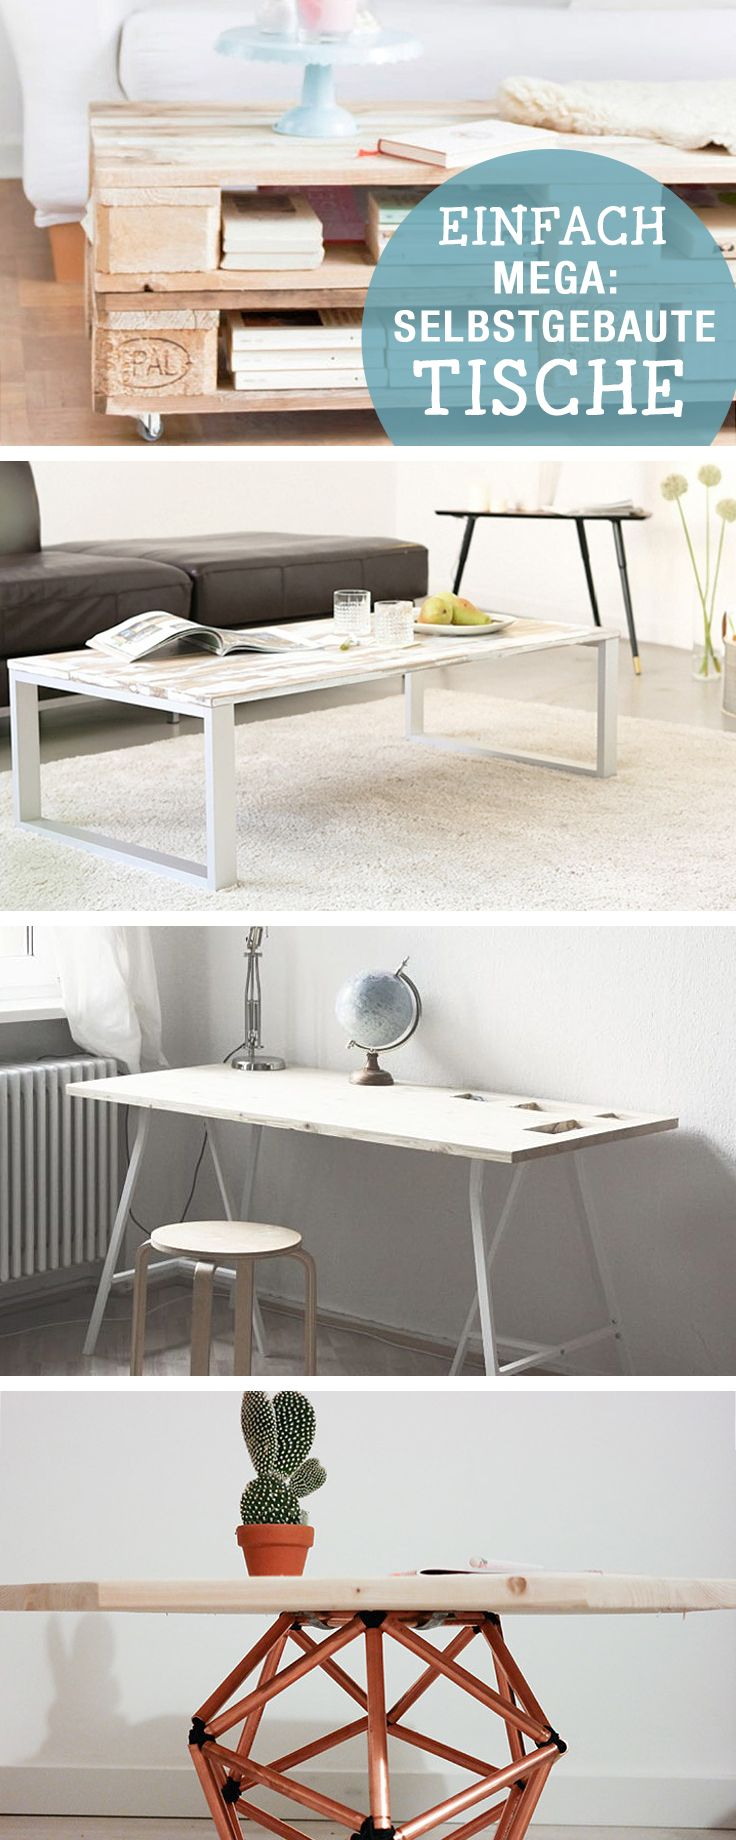 wohnmöbel design besonders images und ddbcfdccade wooden tables home accessories jpg